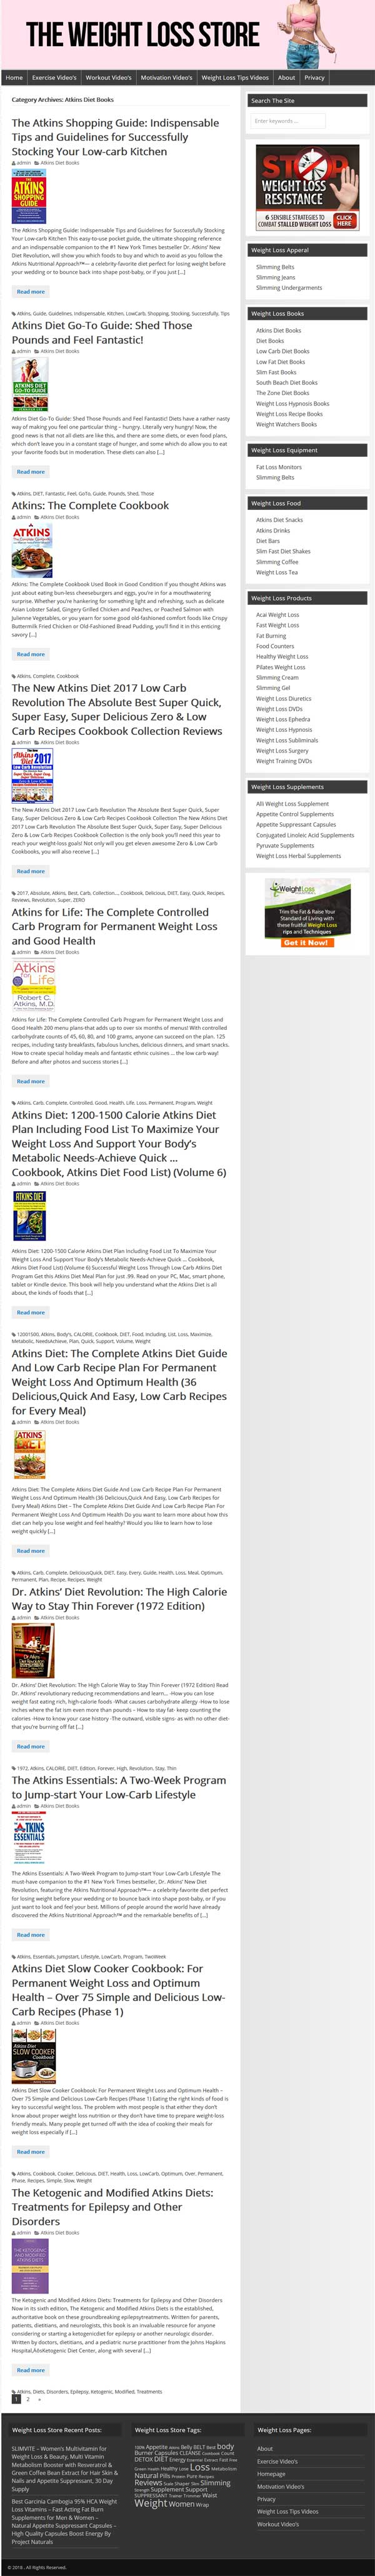 Weight Loss PLR Turnkey Amazon Store Website